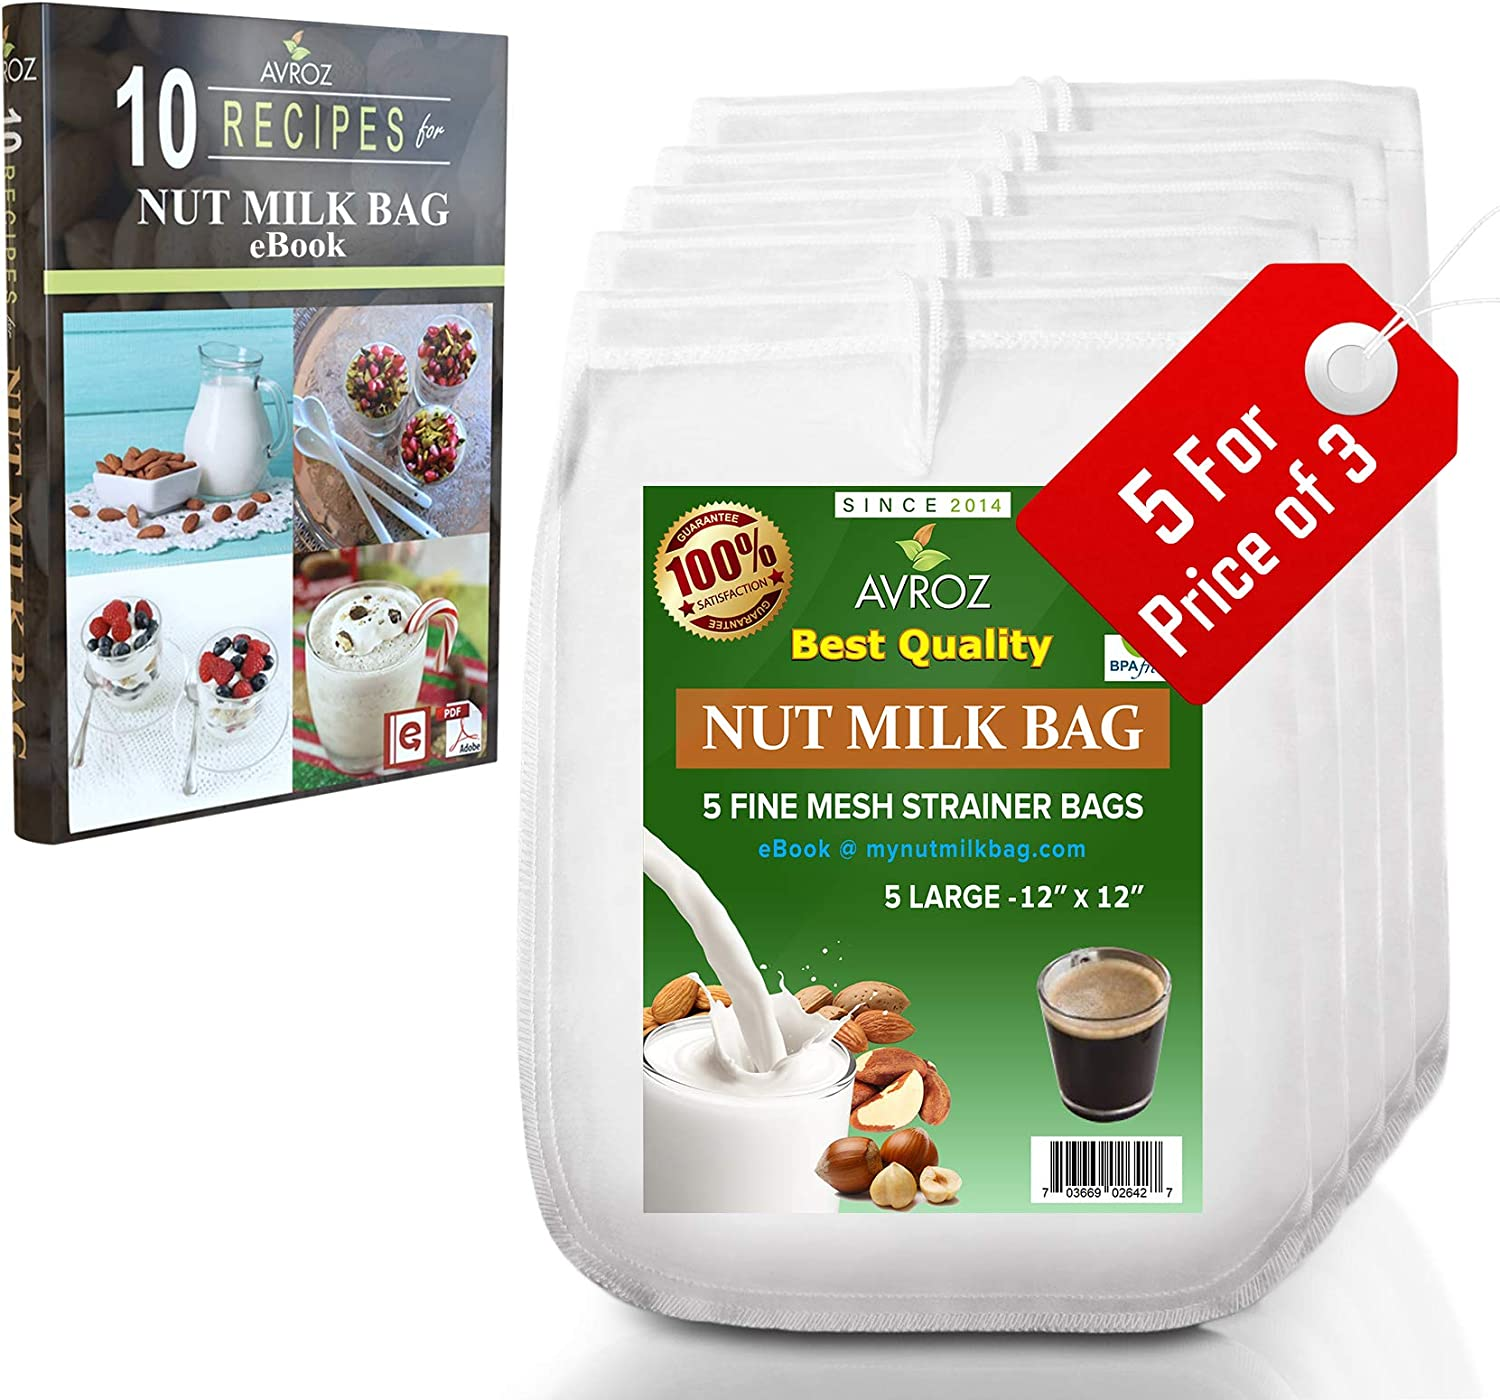 My Best Nut Milk Bag 5 Pack With Recipe eBook | Food Grade Nylon Mesh Reusable Filter Bags | Make Almond Milk, Use As Yogurt & Kefir Maker, Cheesecloth, Tea Filter, Food Strainer, Brew Coffee & More